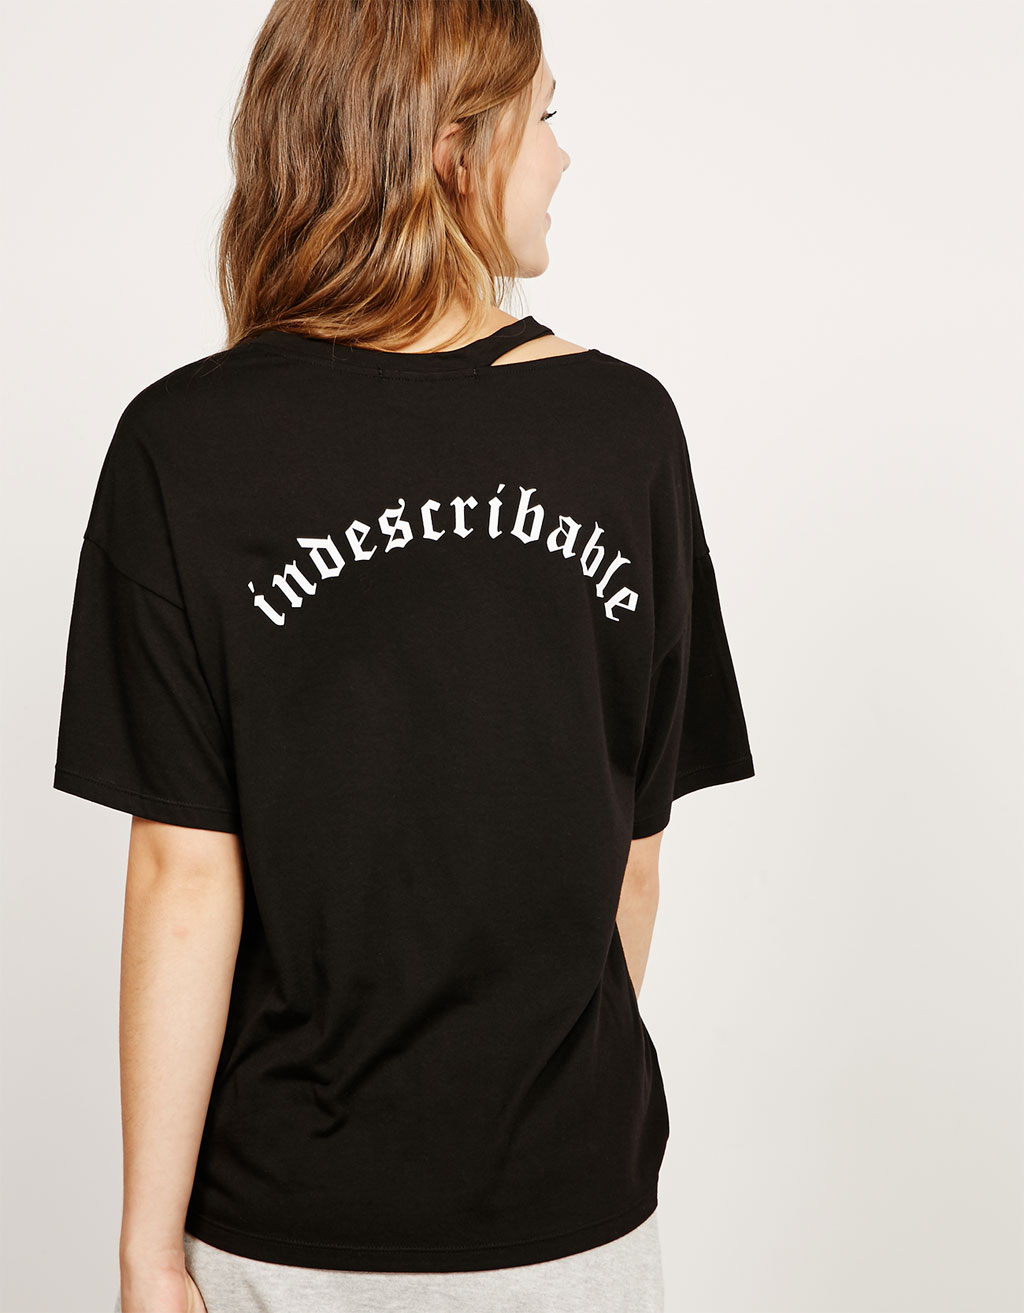 Open neck top with text on back